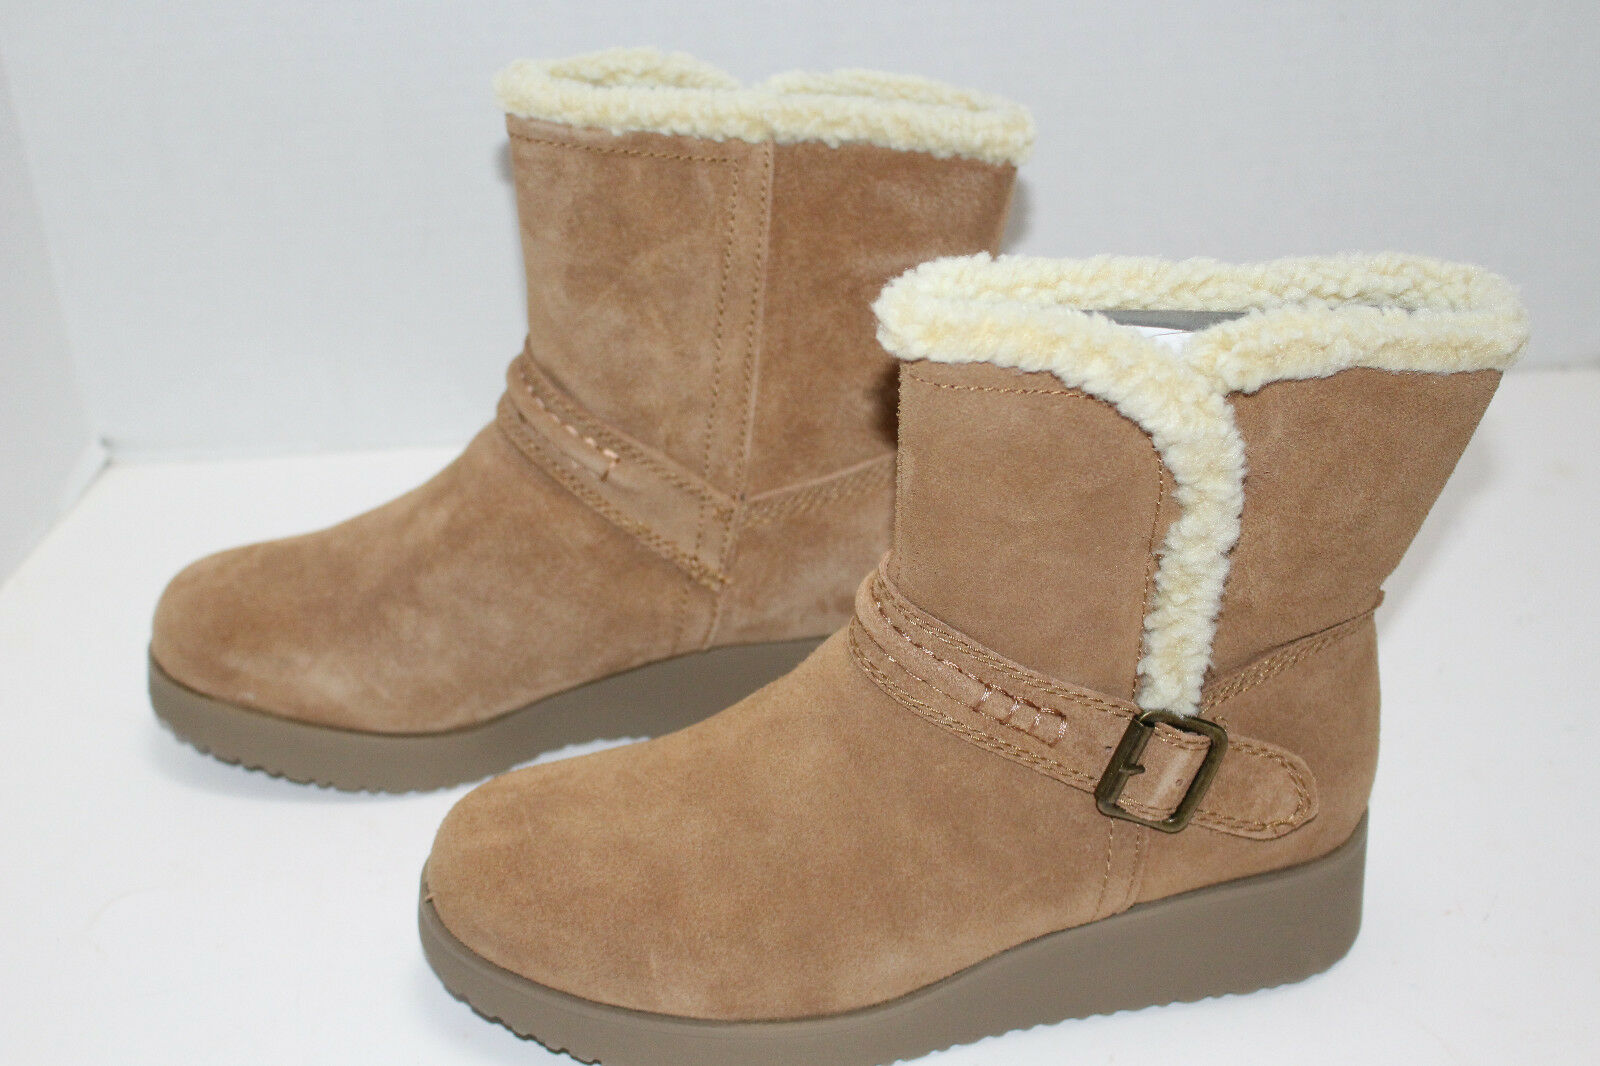 NEW Womens Sonoma Genuine Suede Upper Lined Boot Size 9 color Chestnut